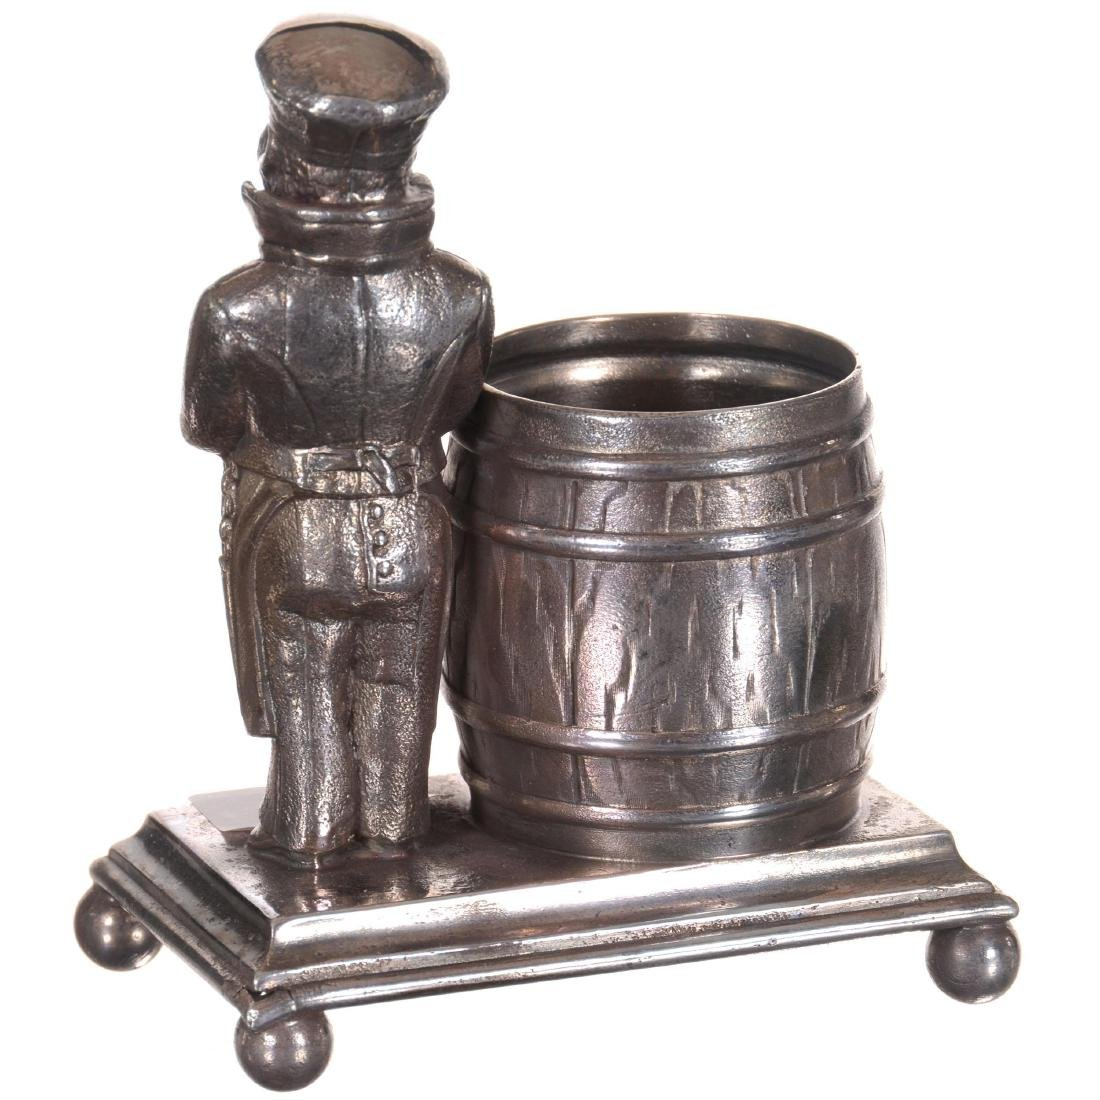 Figural Silver-plate Toothpick Holder - 2